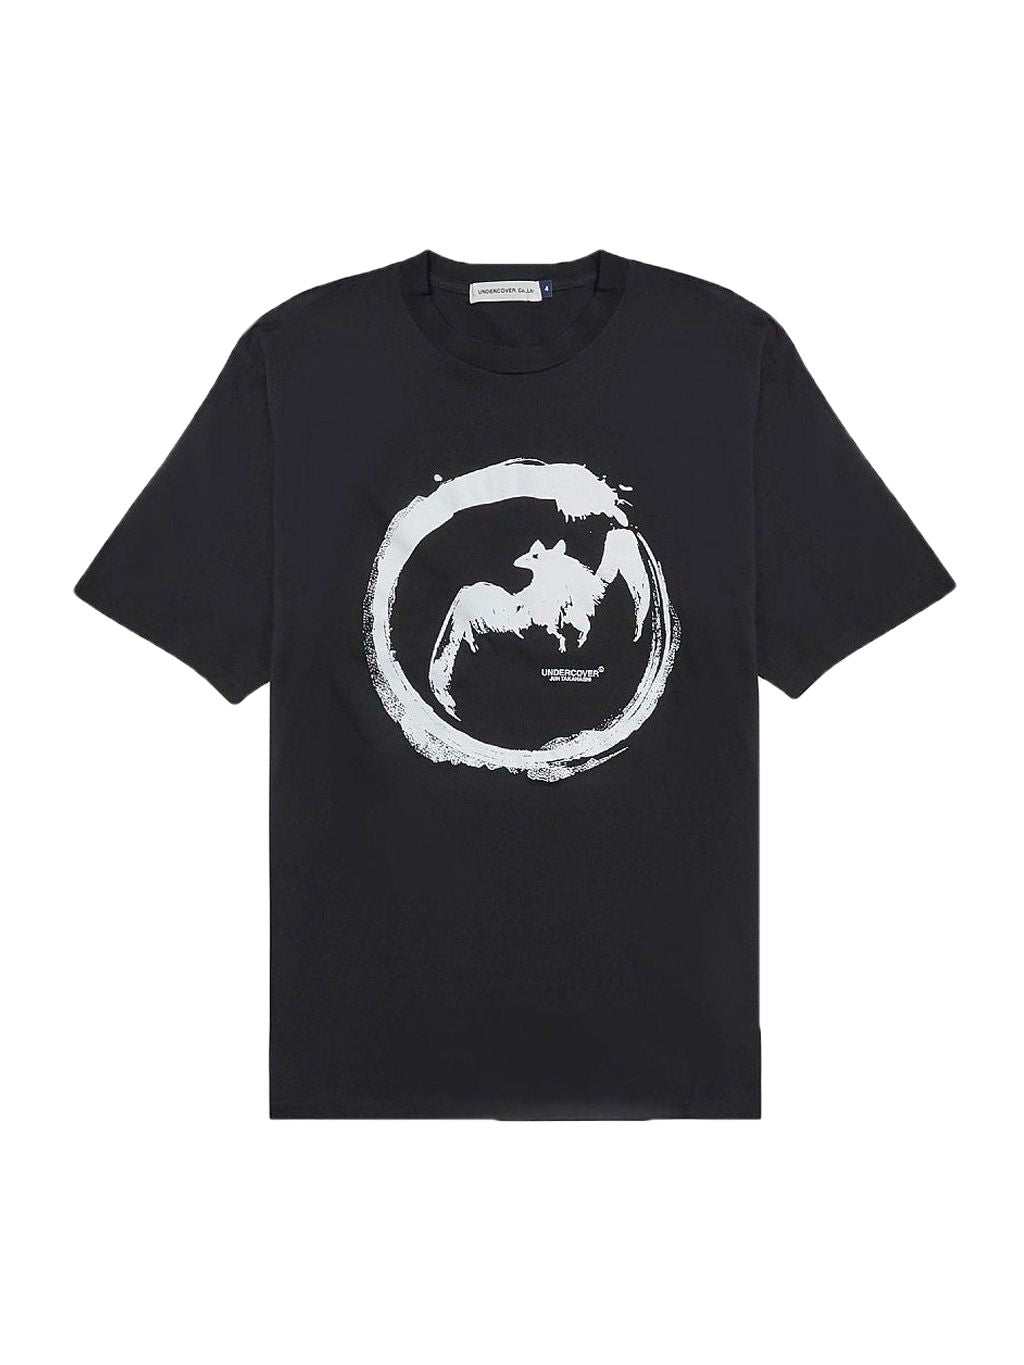 Black or White Bat Paint T-Shirt